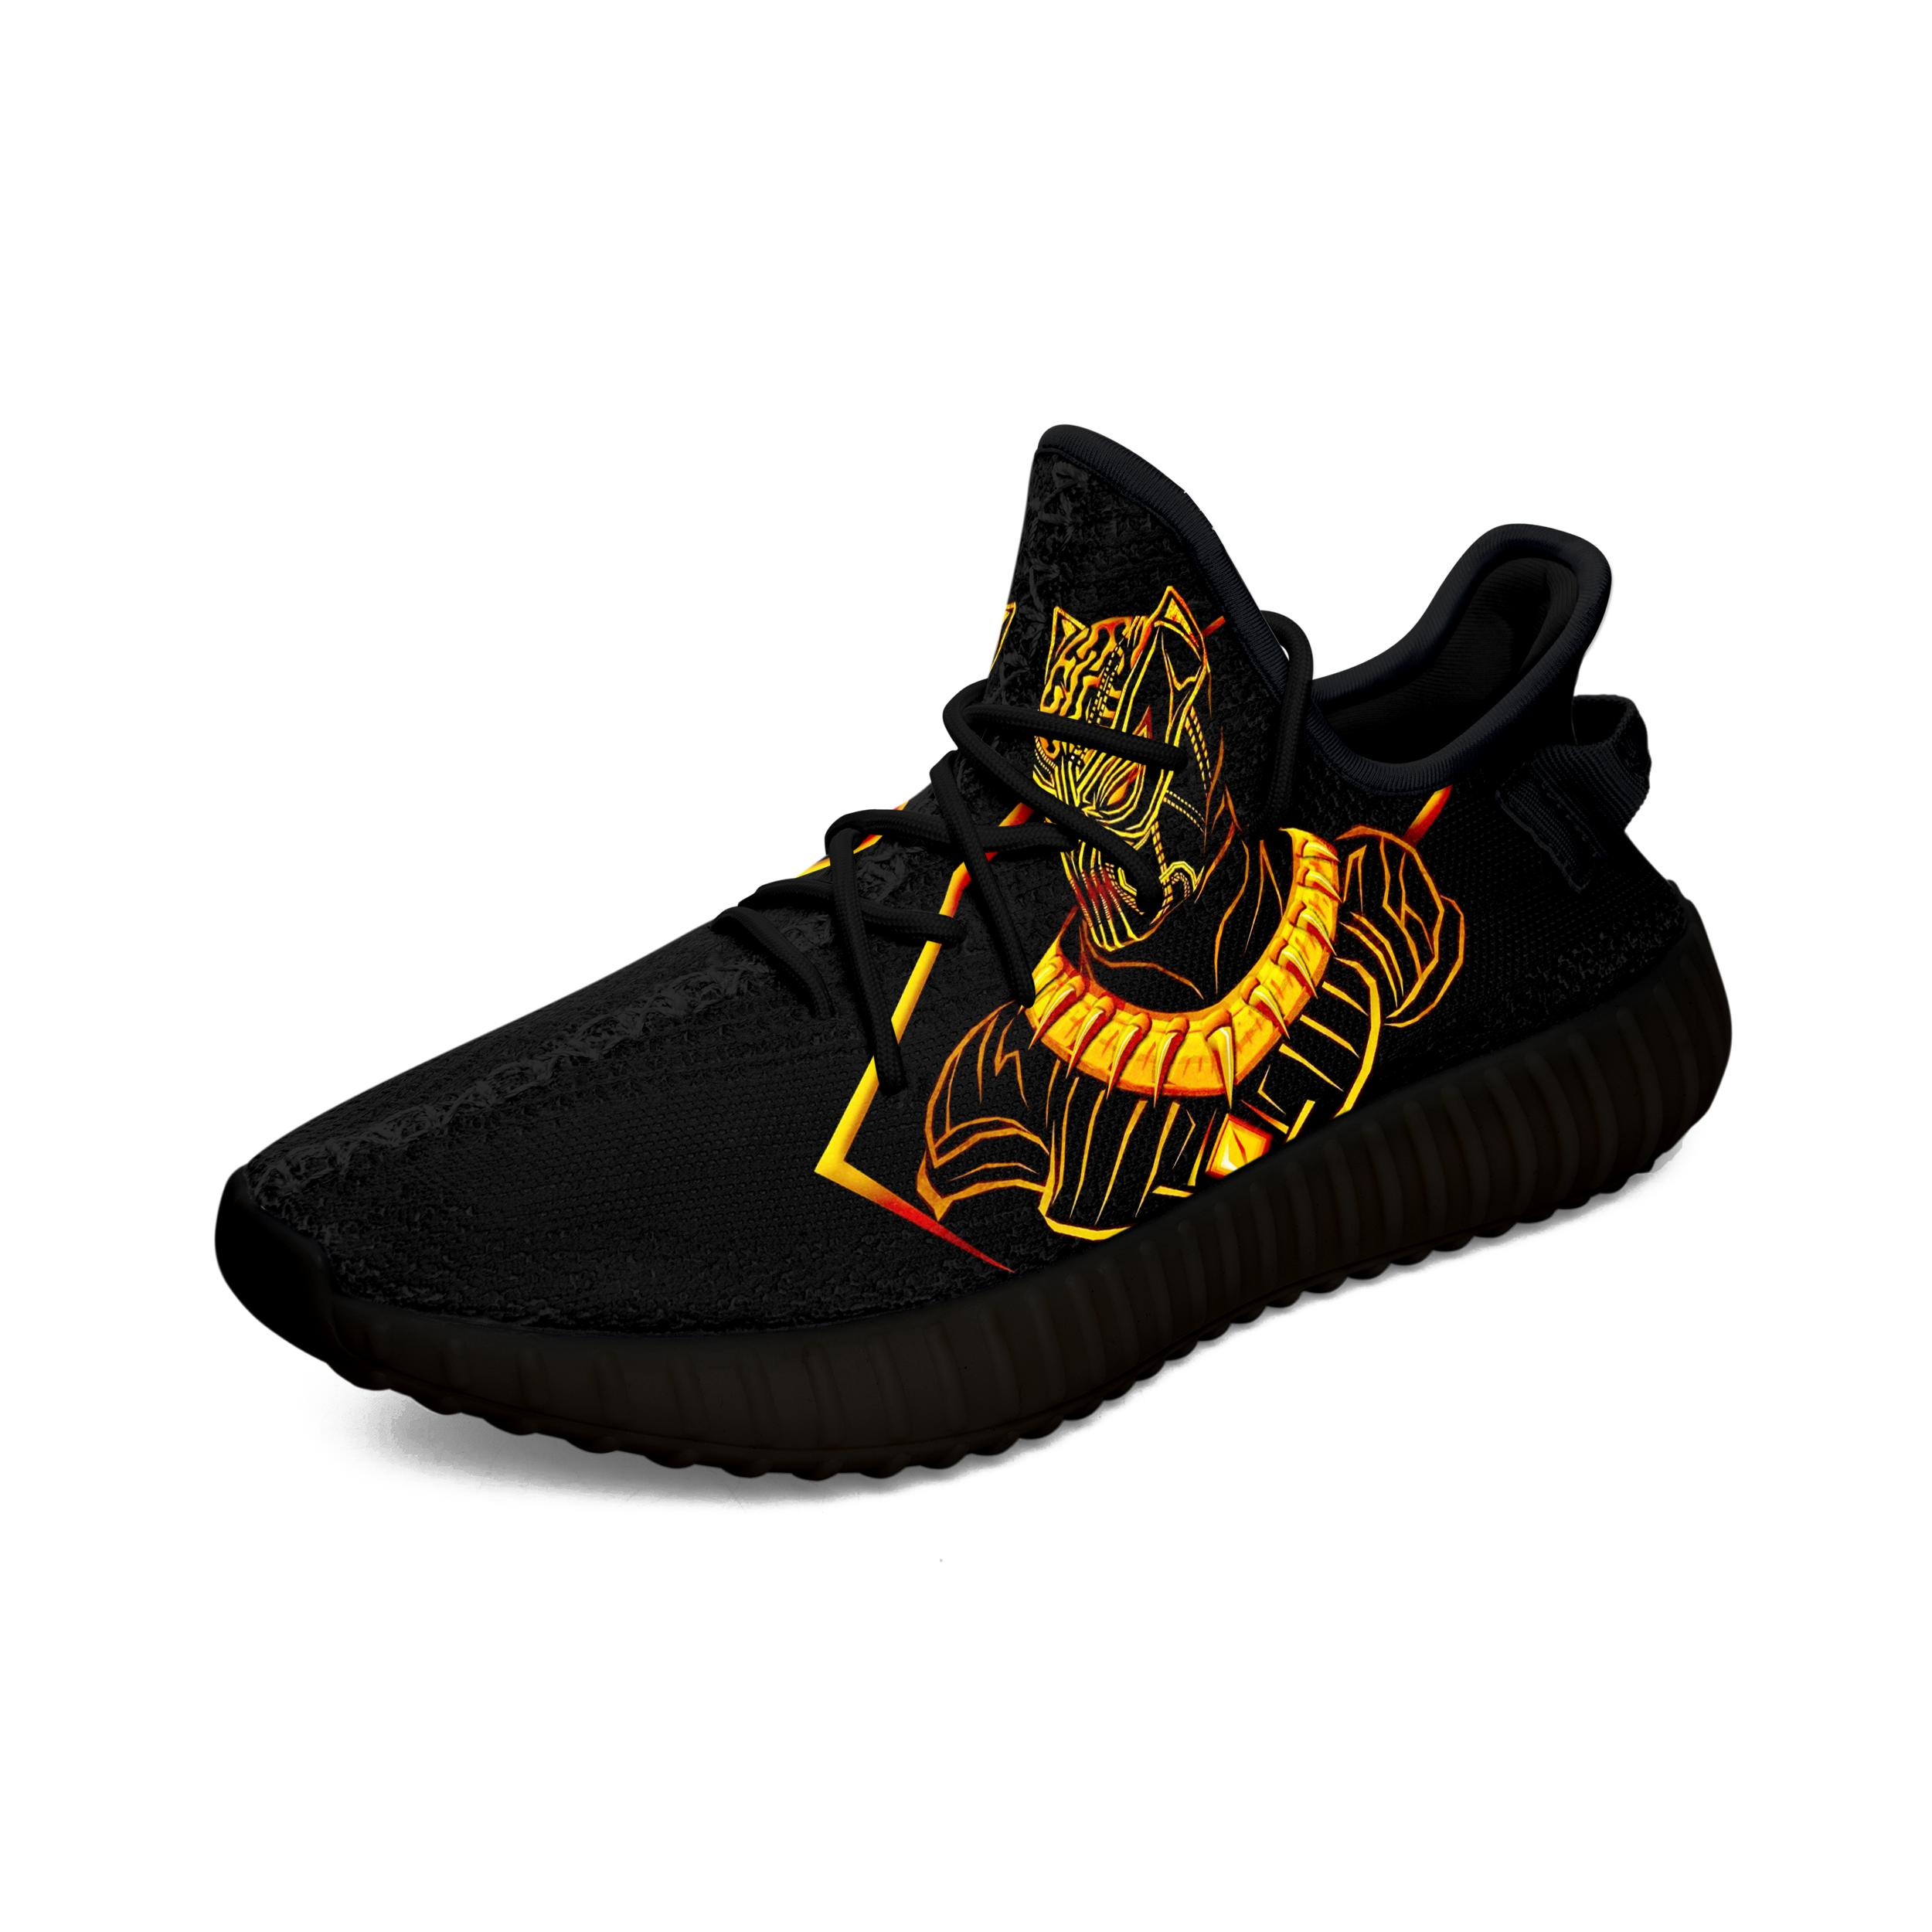 190705 ? Black Panther Yeezy Boots